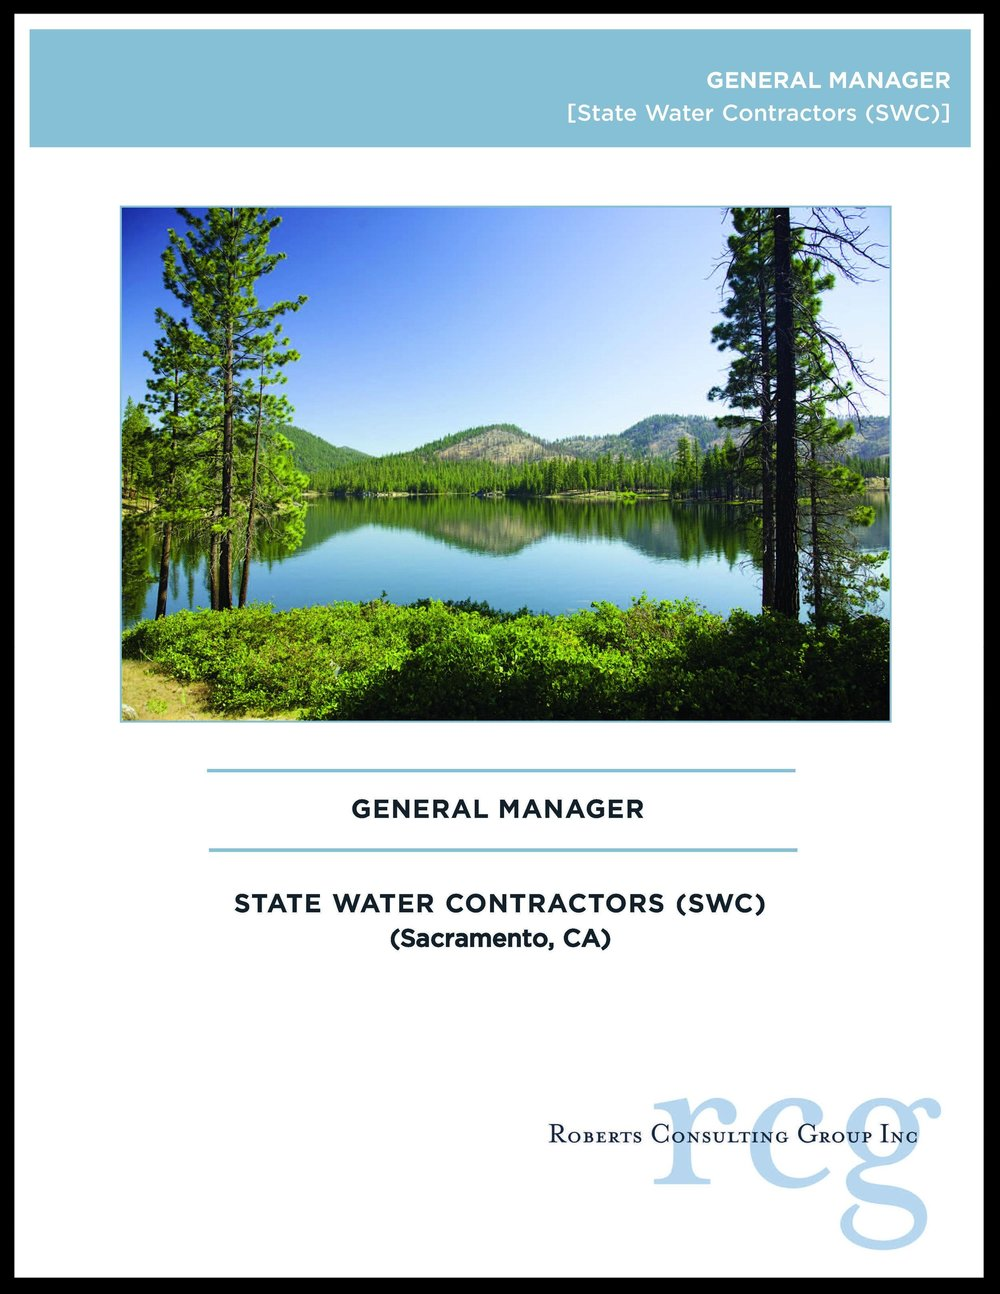 CLWA General Manager brochure.jpg